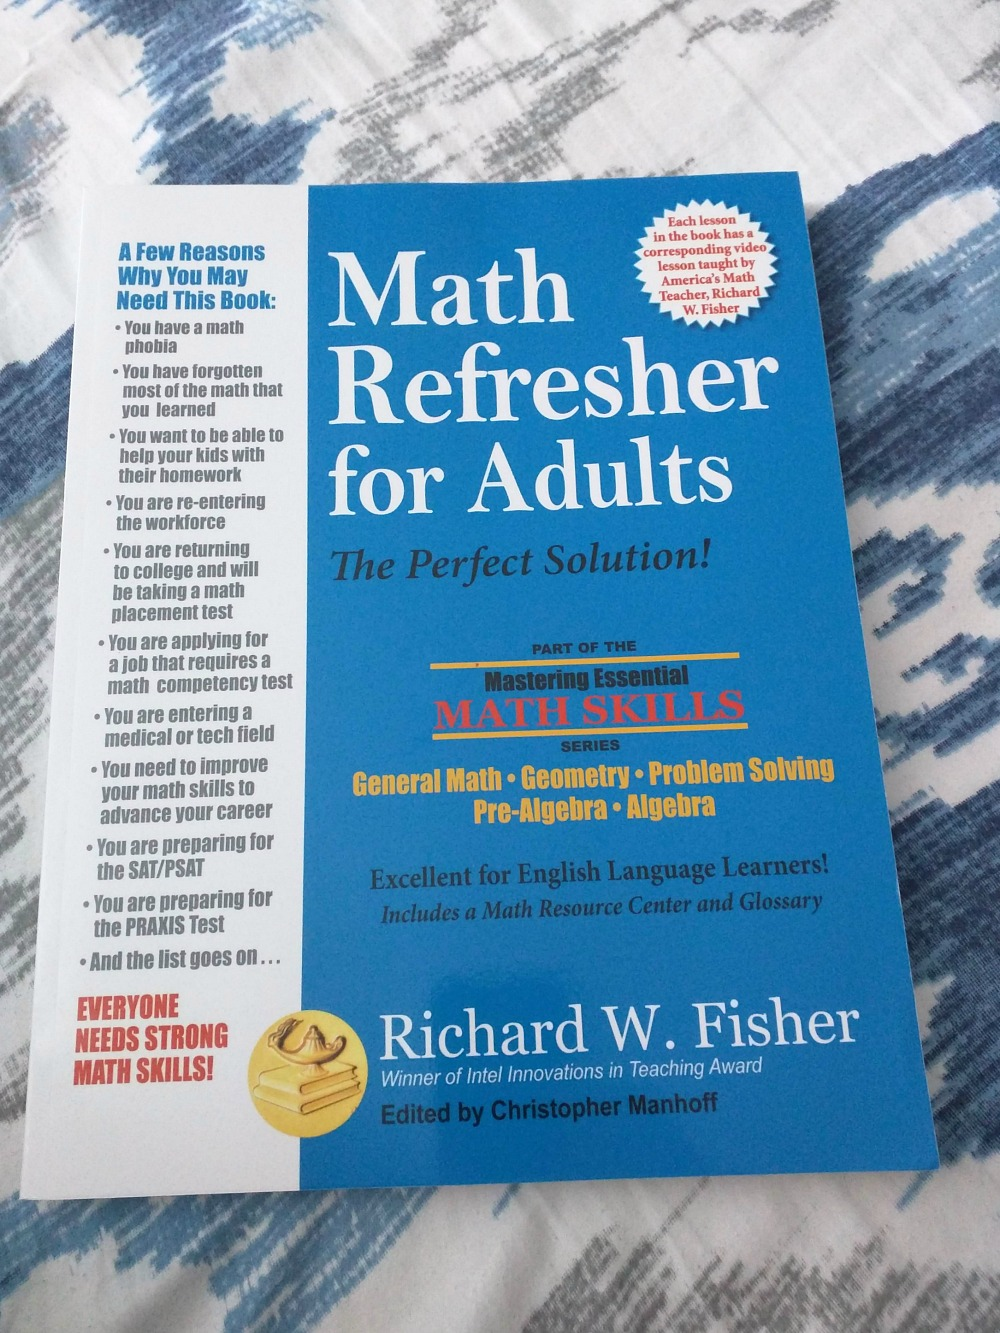 Math Refresher for Adults (Book Review) - Real And Quirky